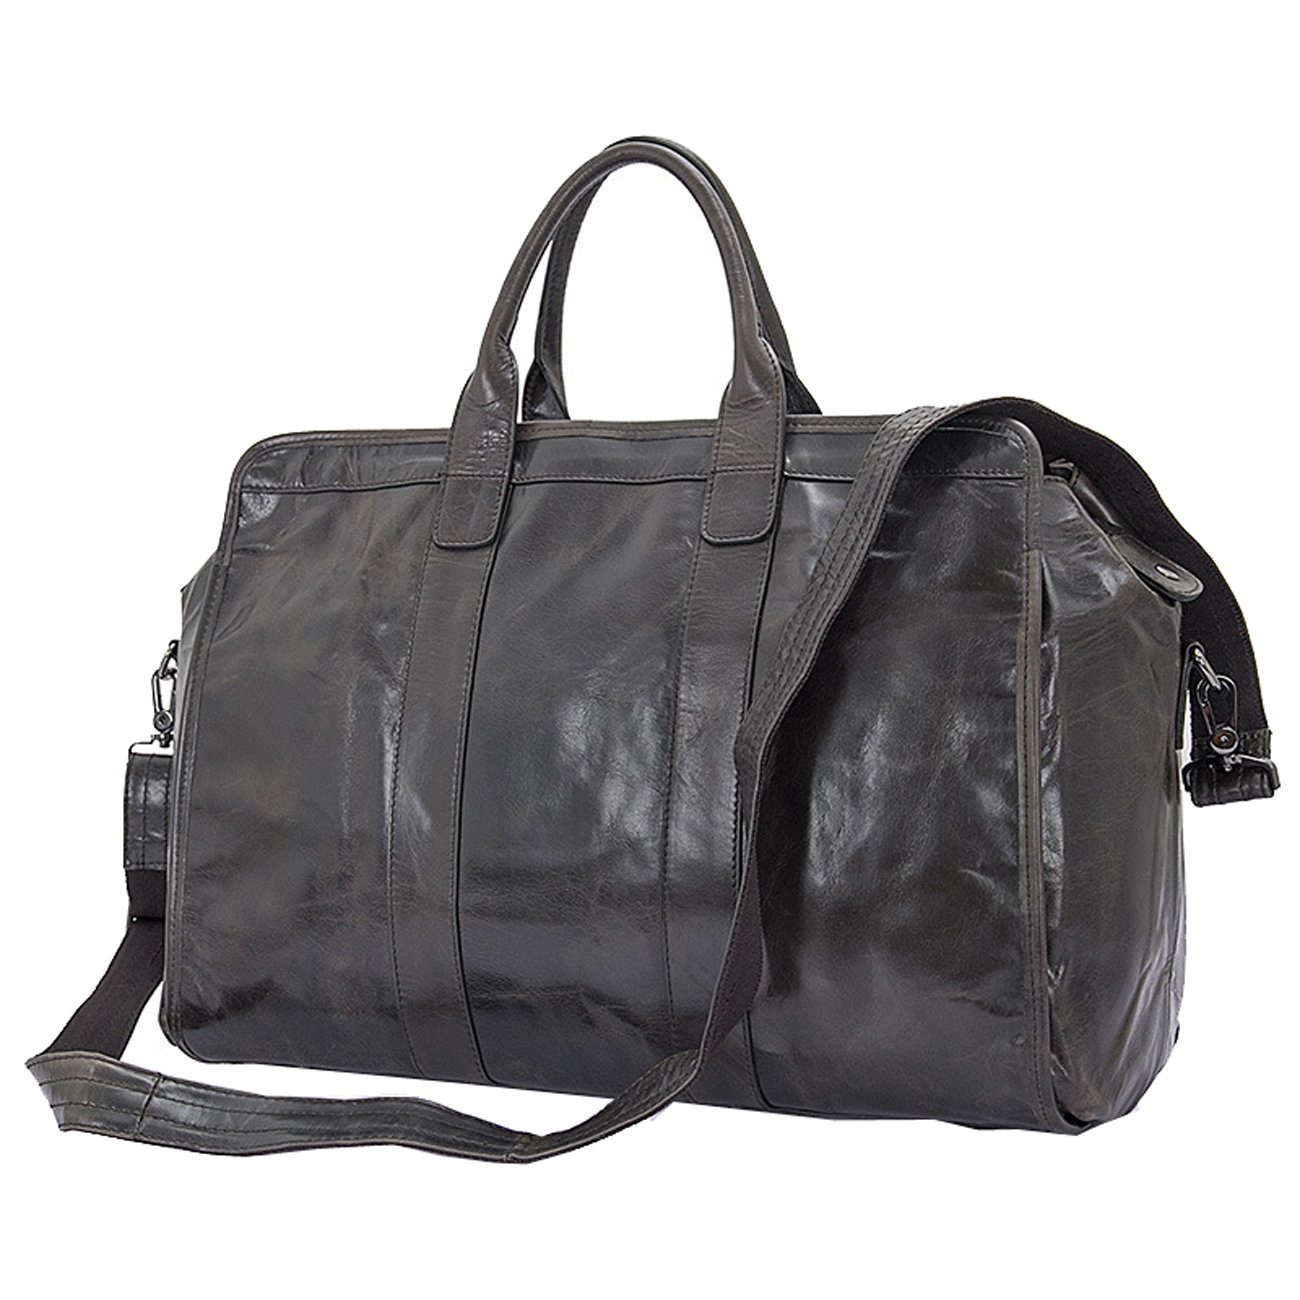 Large Mens Overnight Leather Travel Weekend Bag 17inch Luggage by Berchirly